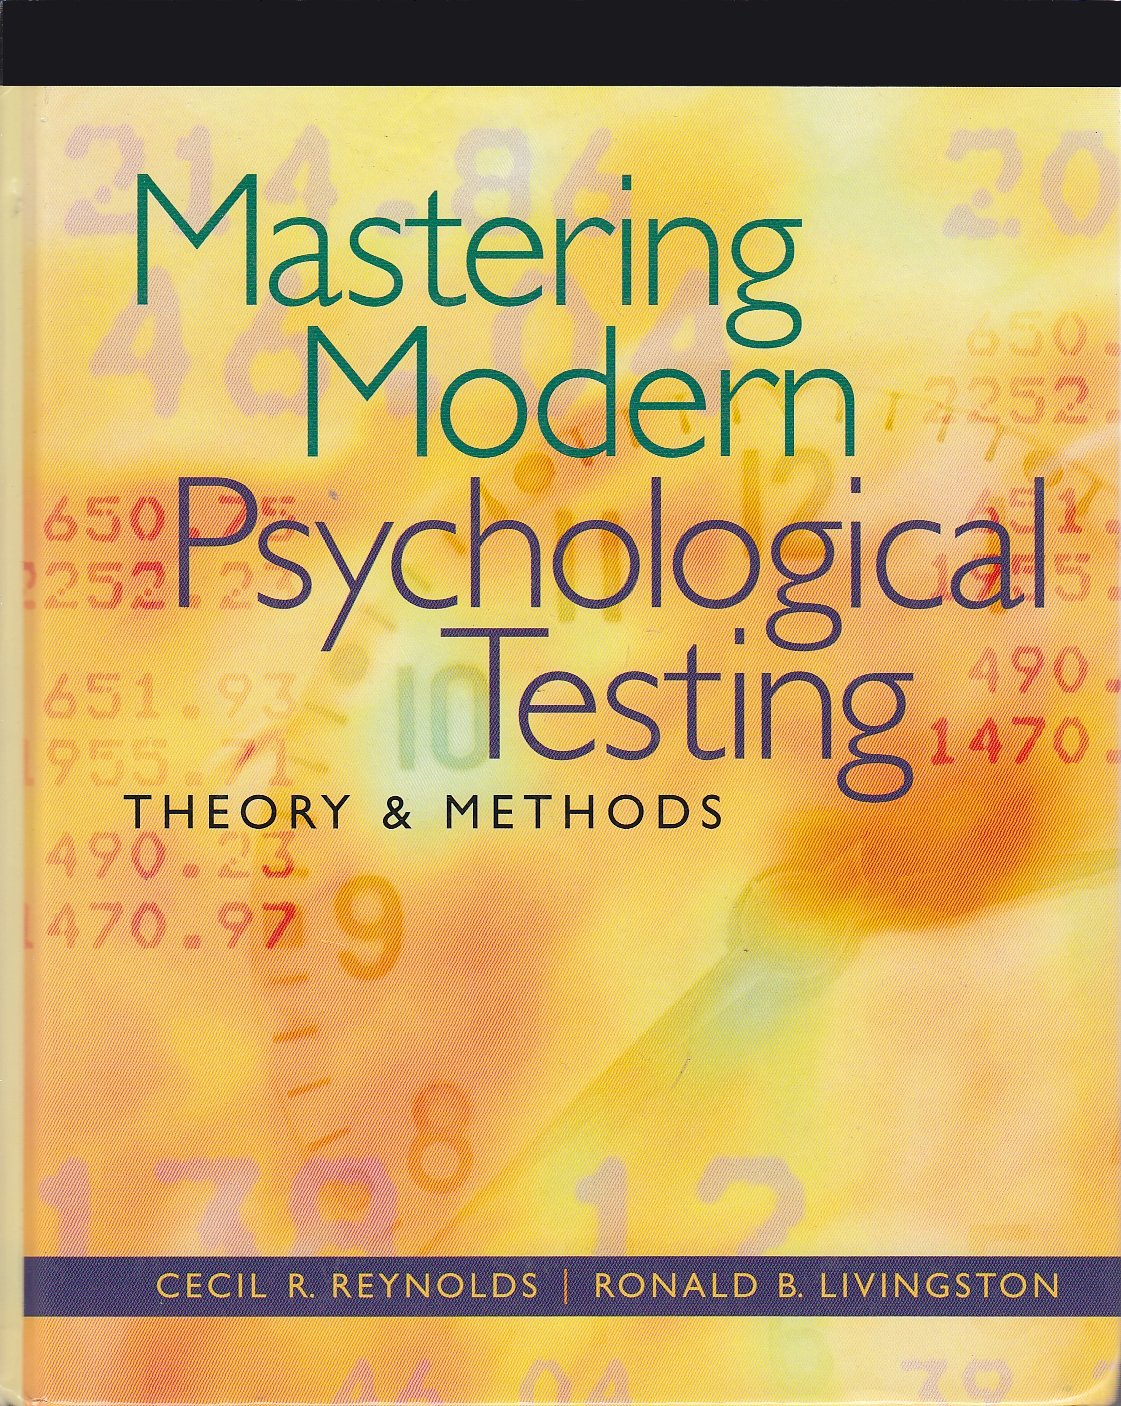 Mastering Modern Psychological Testing - Theory & Methods (Instructor Edition) ebook